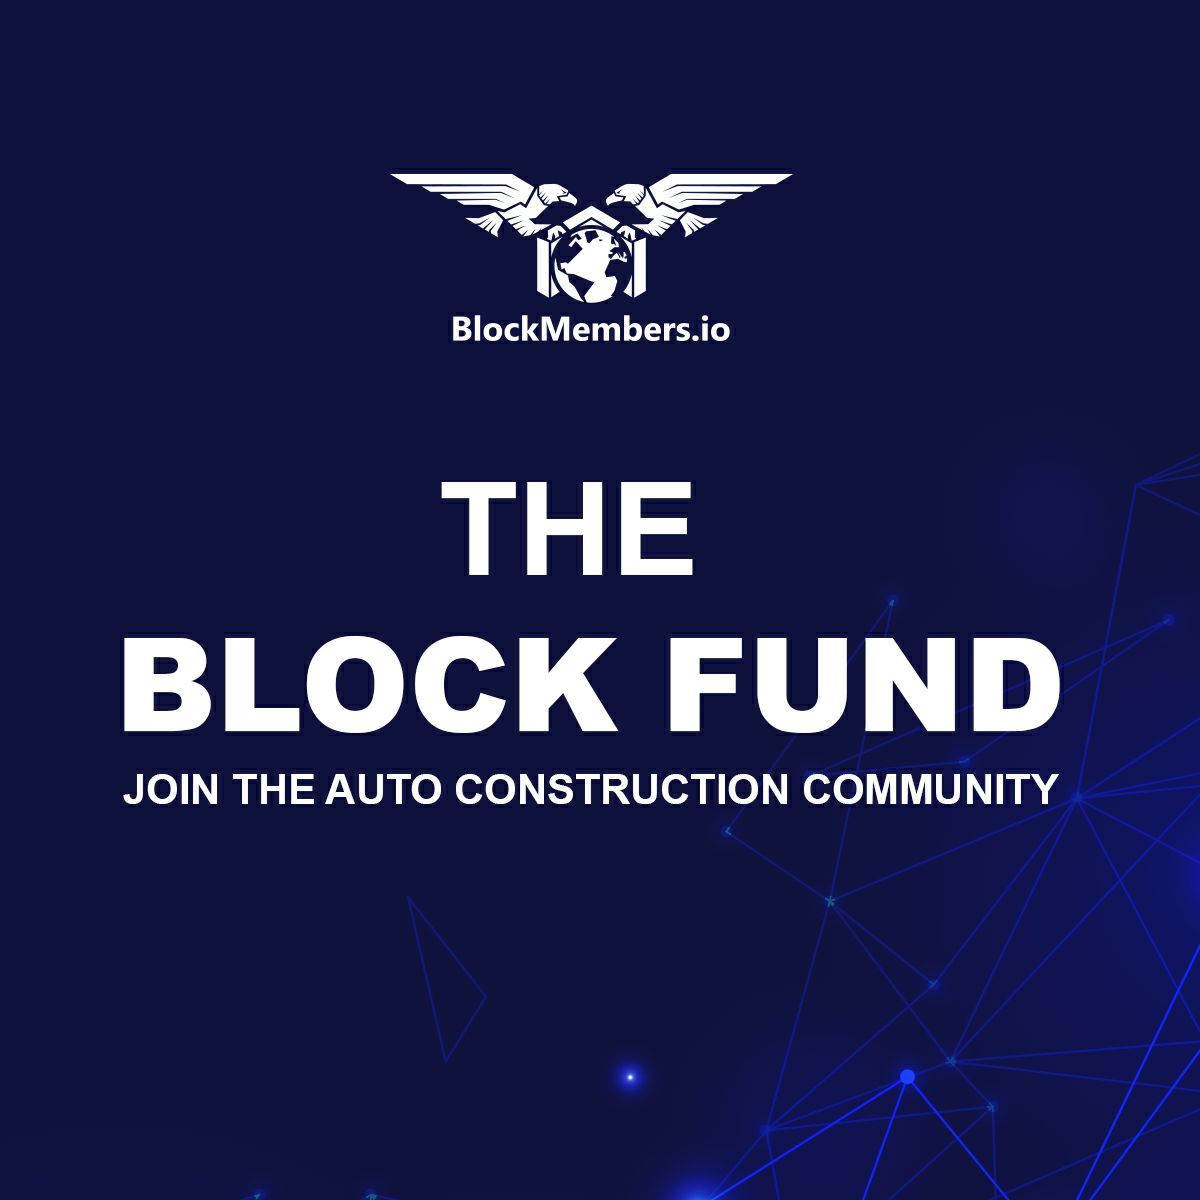 The 'Block Fund' will be created with the release of MBUs on an exchange. The Block Fund is the aggregate of all the Blocks owned by all members at any given time. This might be called the 'Block Market Cap' which will serve the demand from many industry sectors. https://t.co/6GvsO3PPIl